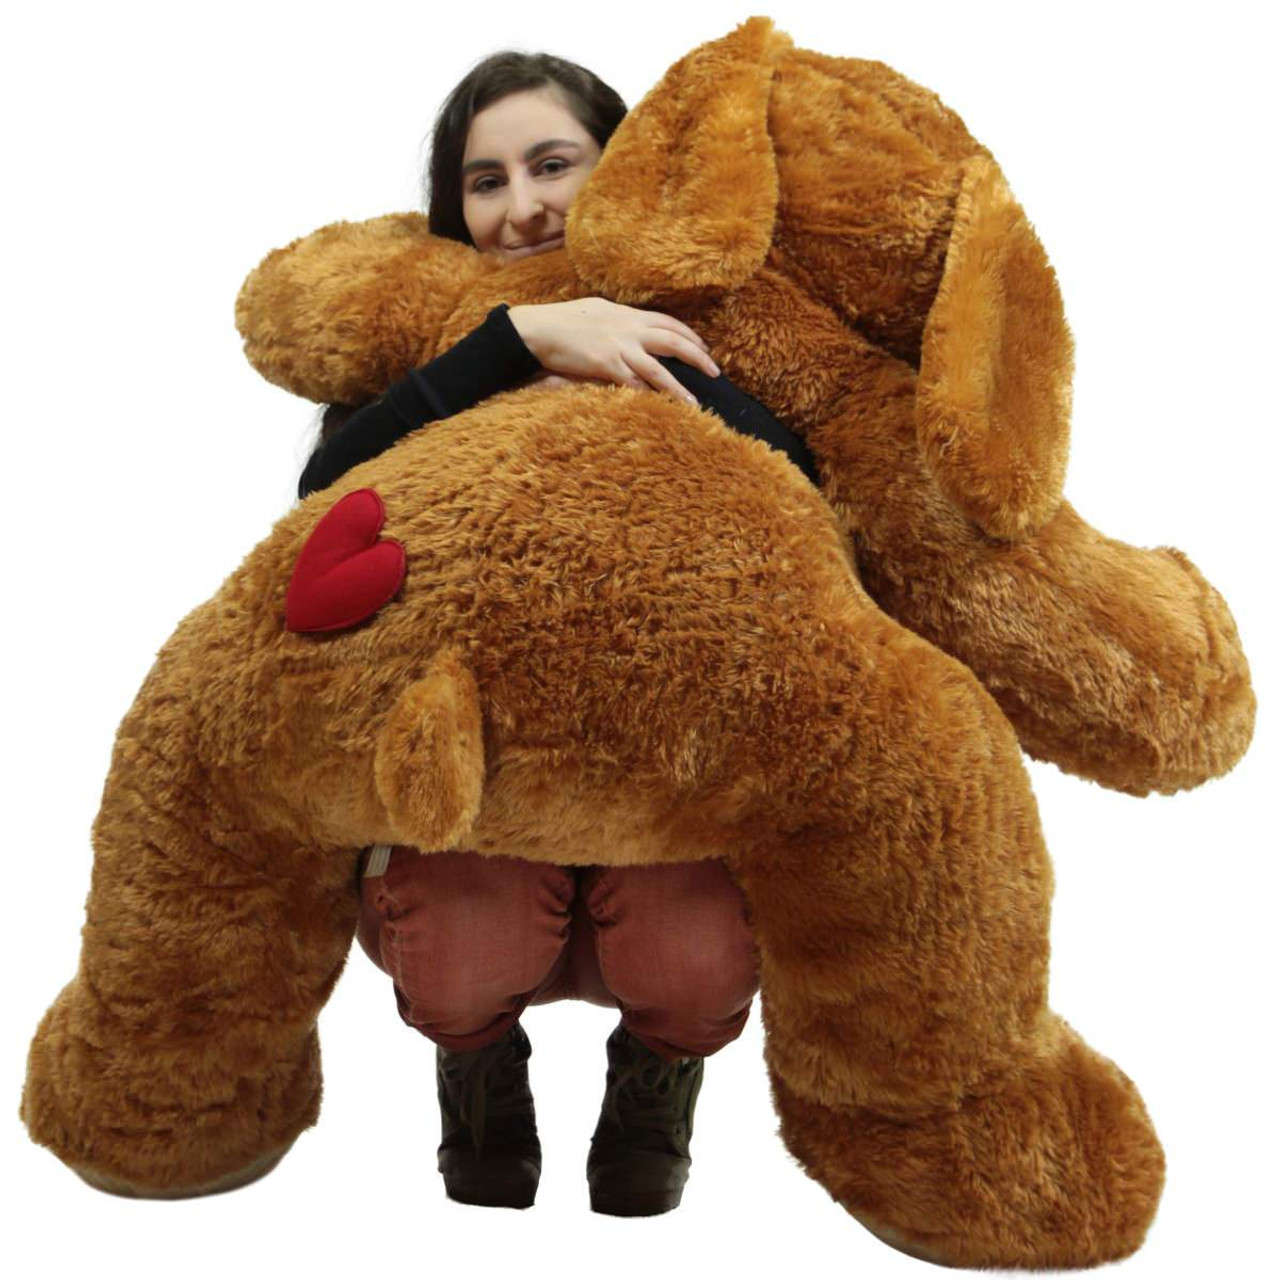 cdeb6d2d6d32 ... Giant Stuffed Puppy Dog with Heart on Butt, 5 Feet Long Soft Extremely  Large Plush ...